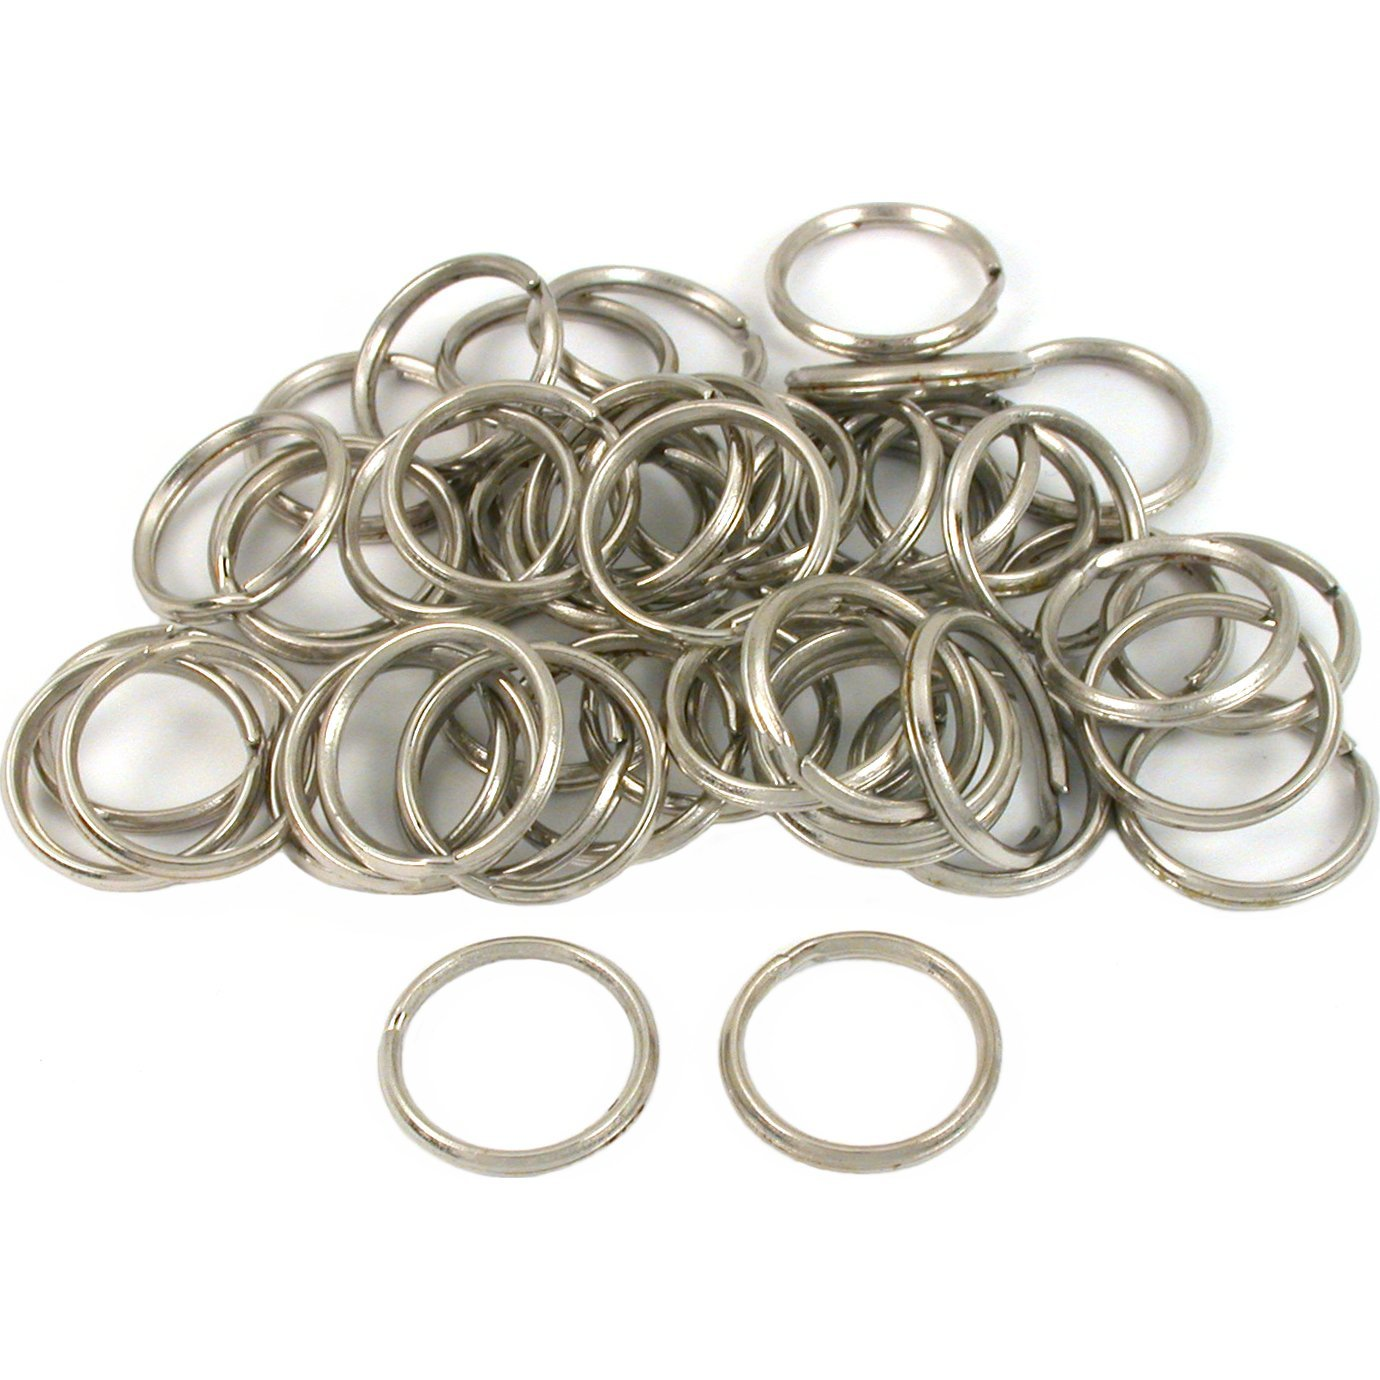 500 Pieces 6 mm Double Loop Jump Rings Round Small Key Chain Rings Connector for DIY Jewelry Making Findings Silver Aylifu Metal Split Rings